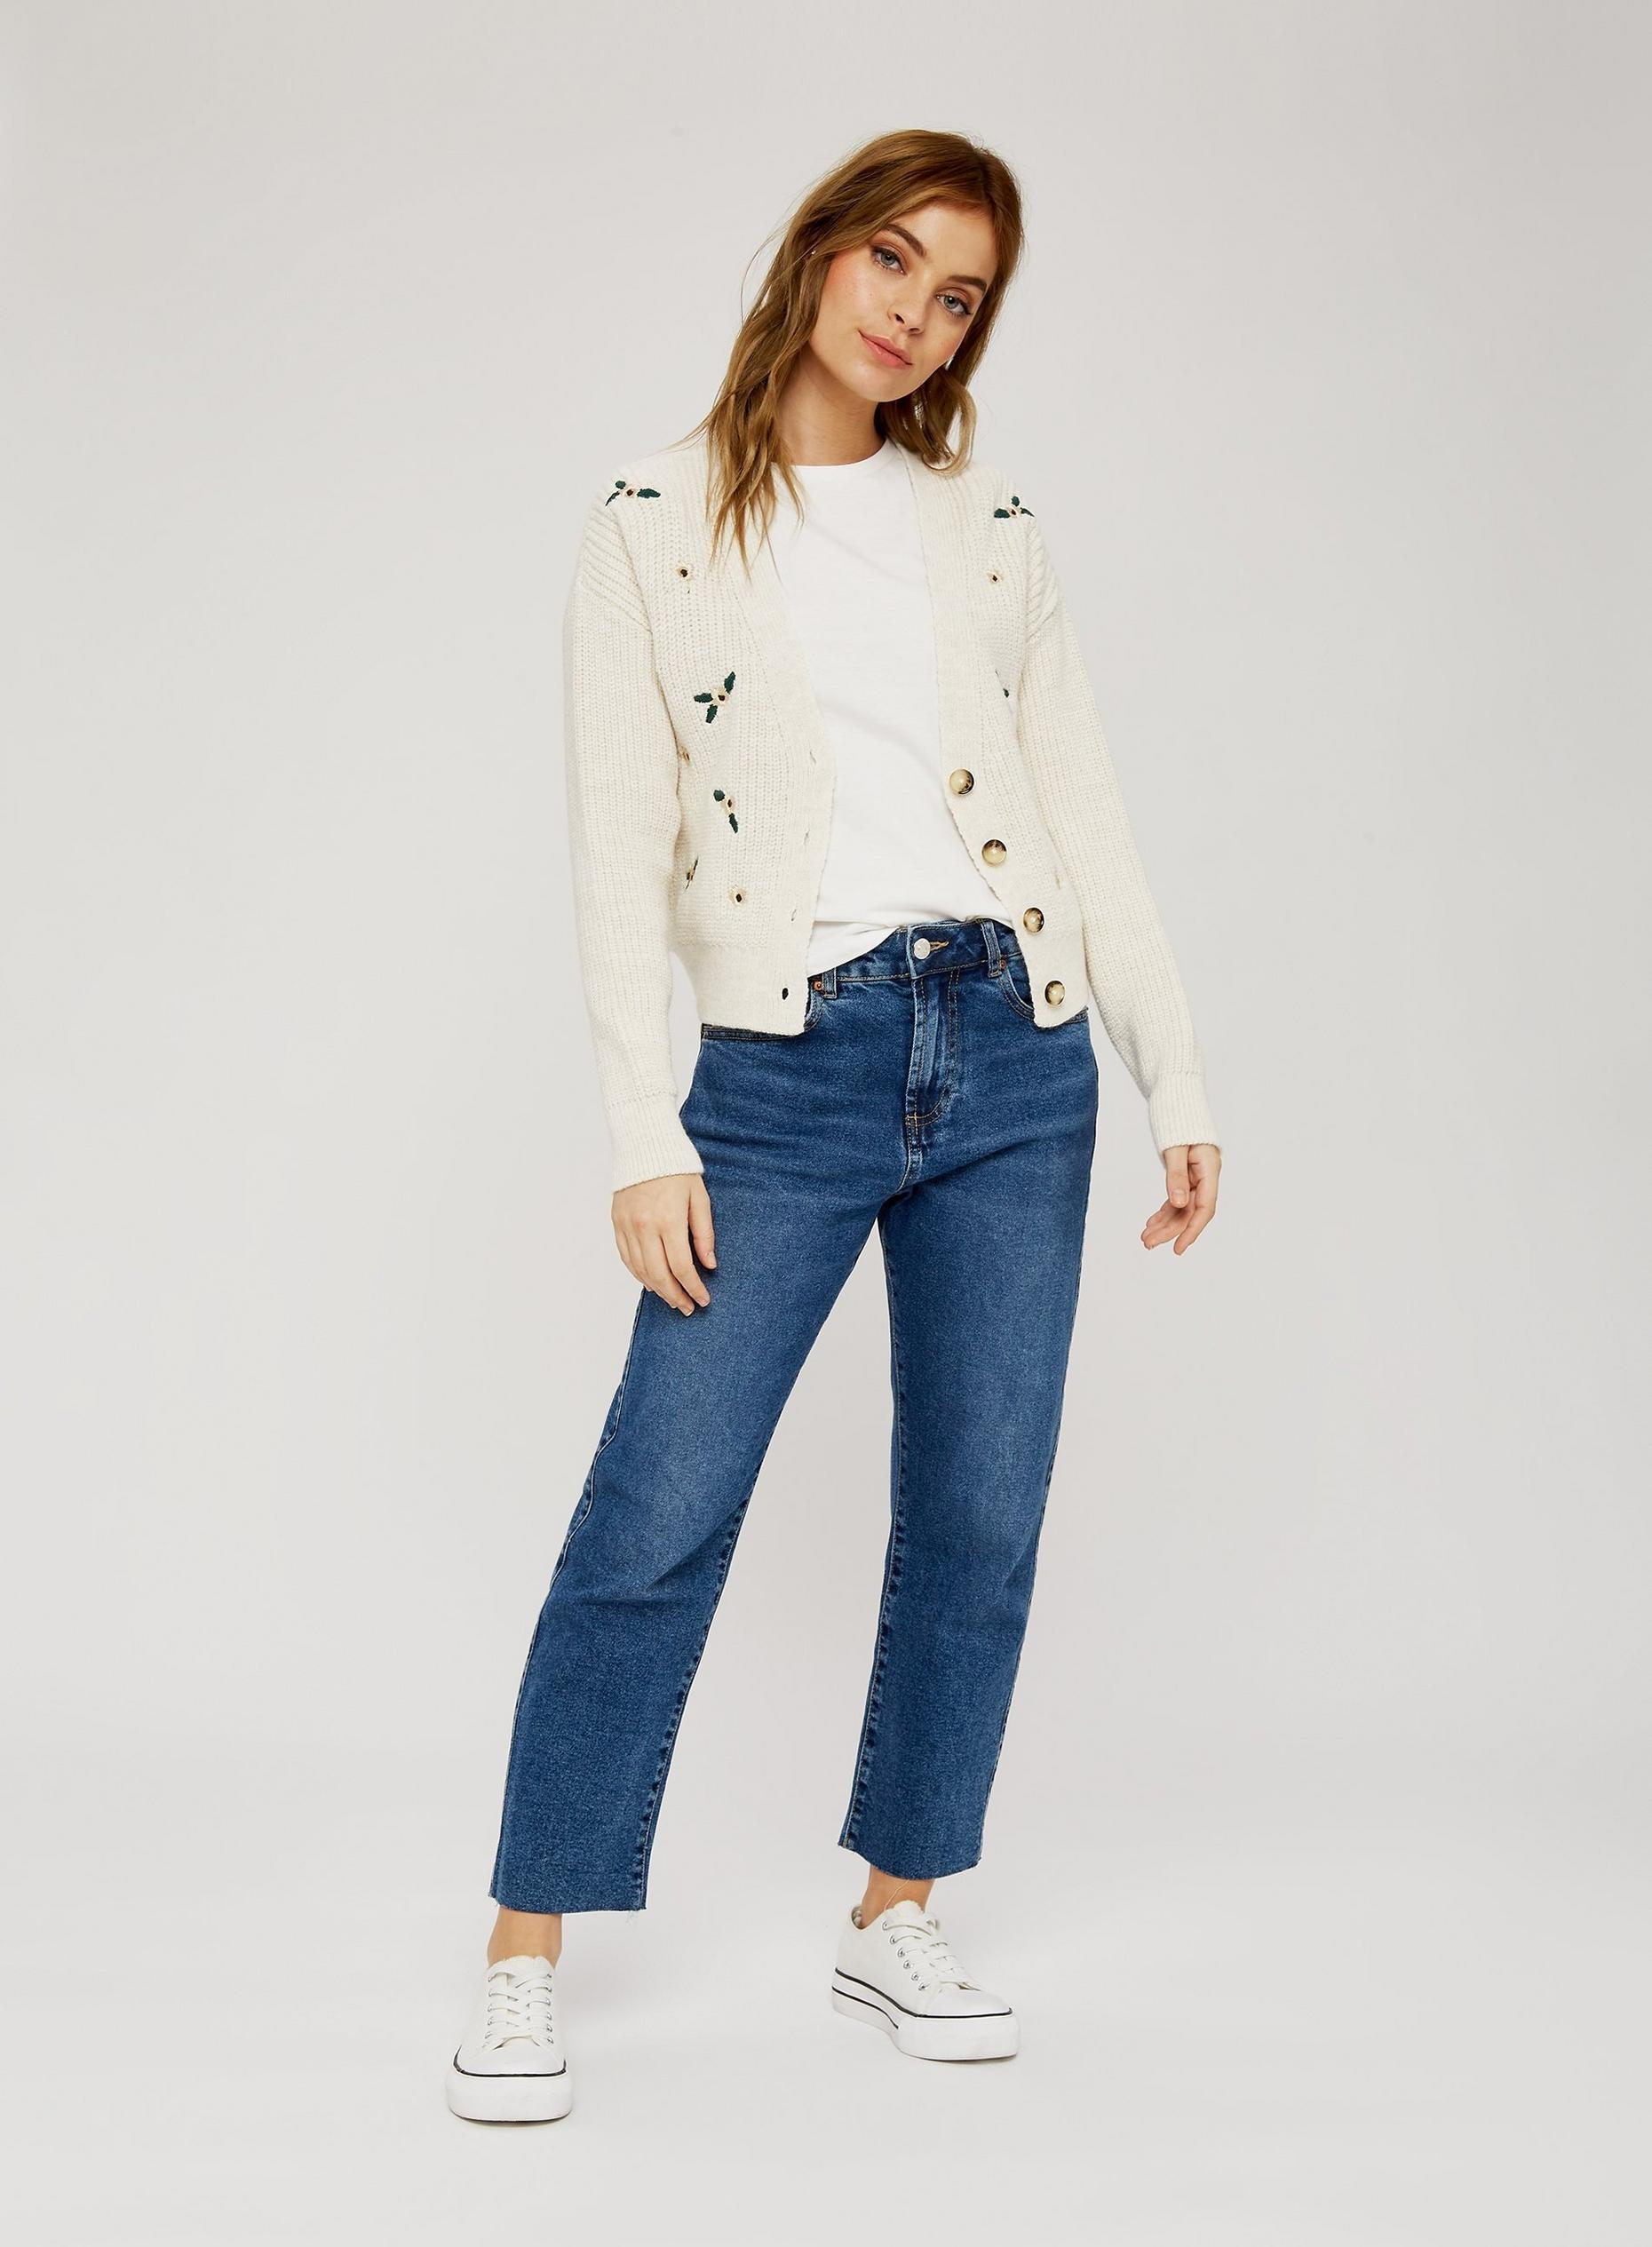 Petite Cream Embroidered Cardigan